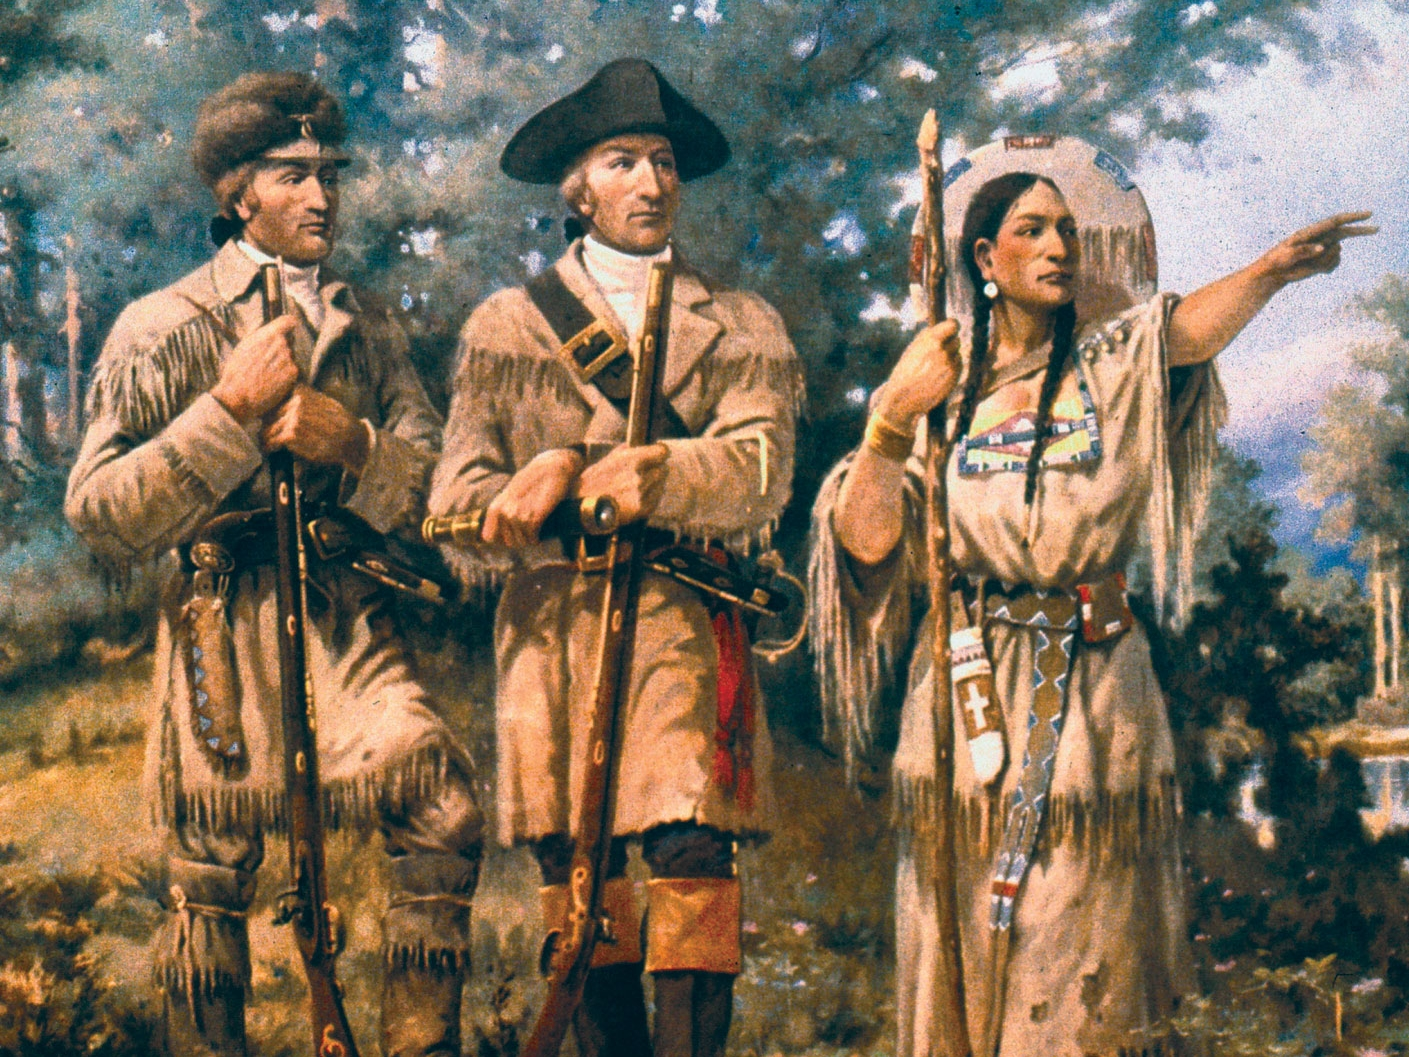 In 1804, President Jefferson commissioned Lewis and Clark. They sailed the Missouri, mapping their journey as they explored the west. Sacagawea translated. Then settlers followed them later. Tecumseh, Shawnee chief, fought the land treaty in Indiana.